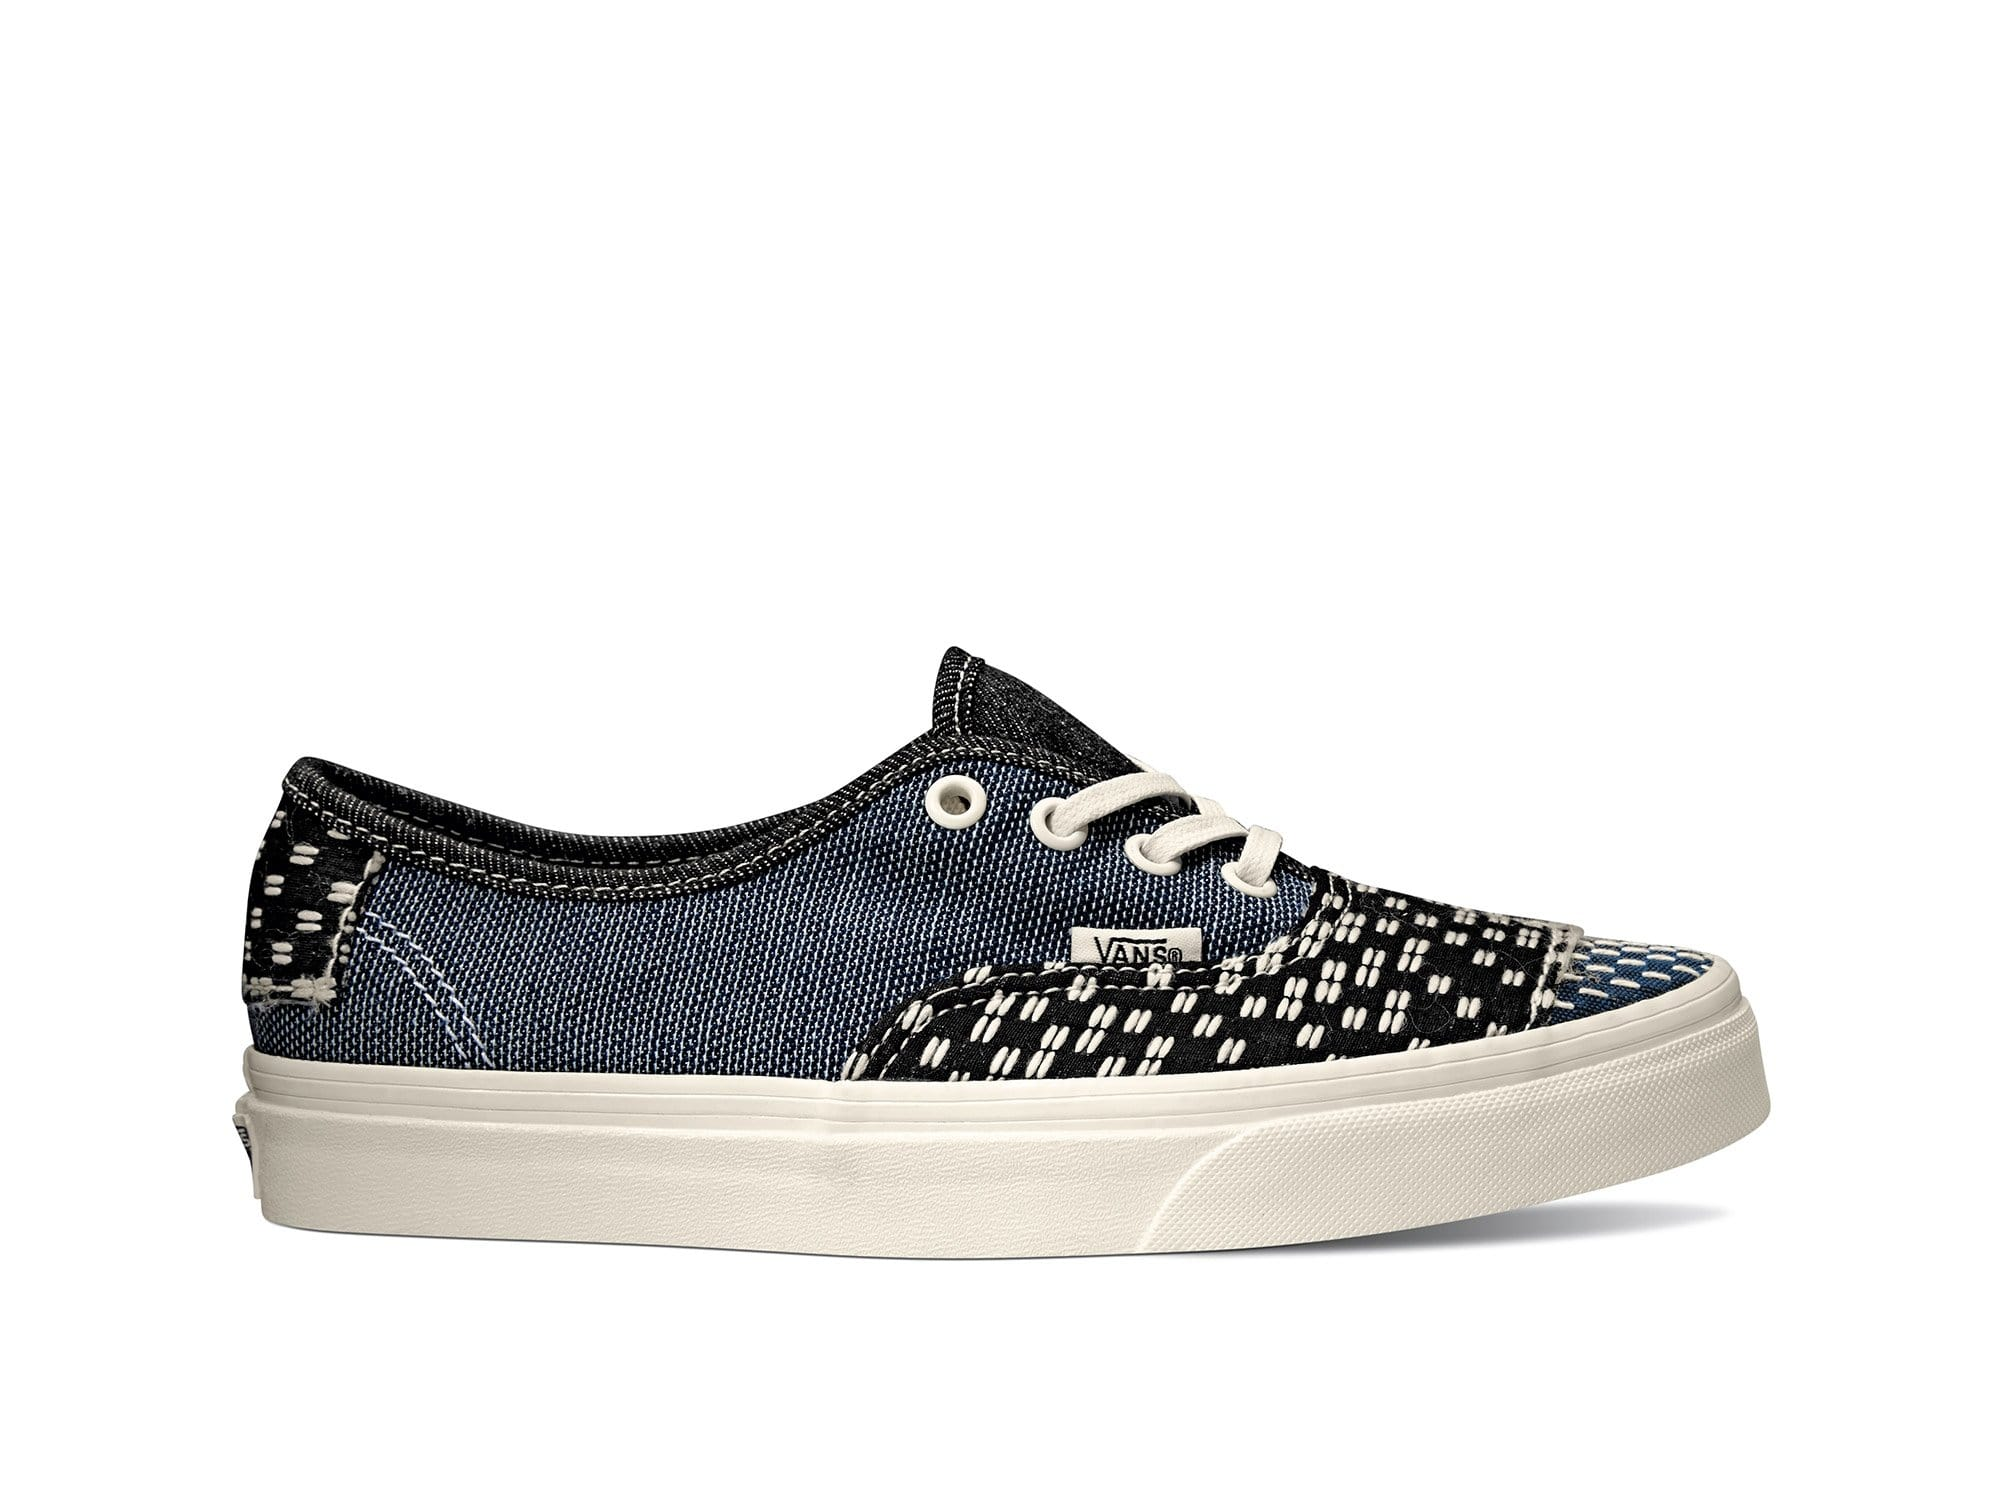 Zapatilla Vans Authentic Patchwork Mujer Negro